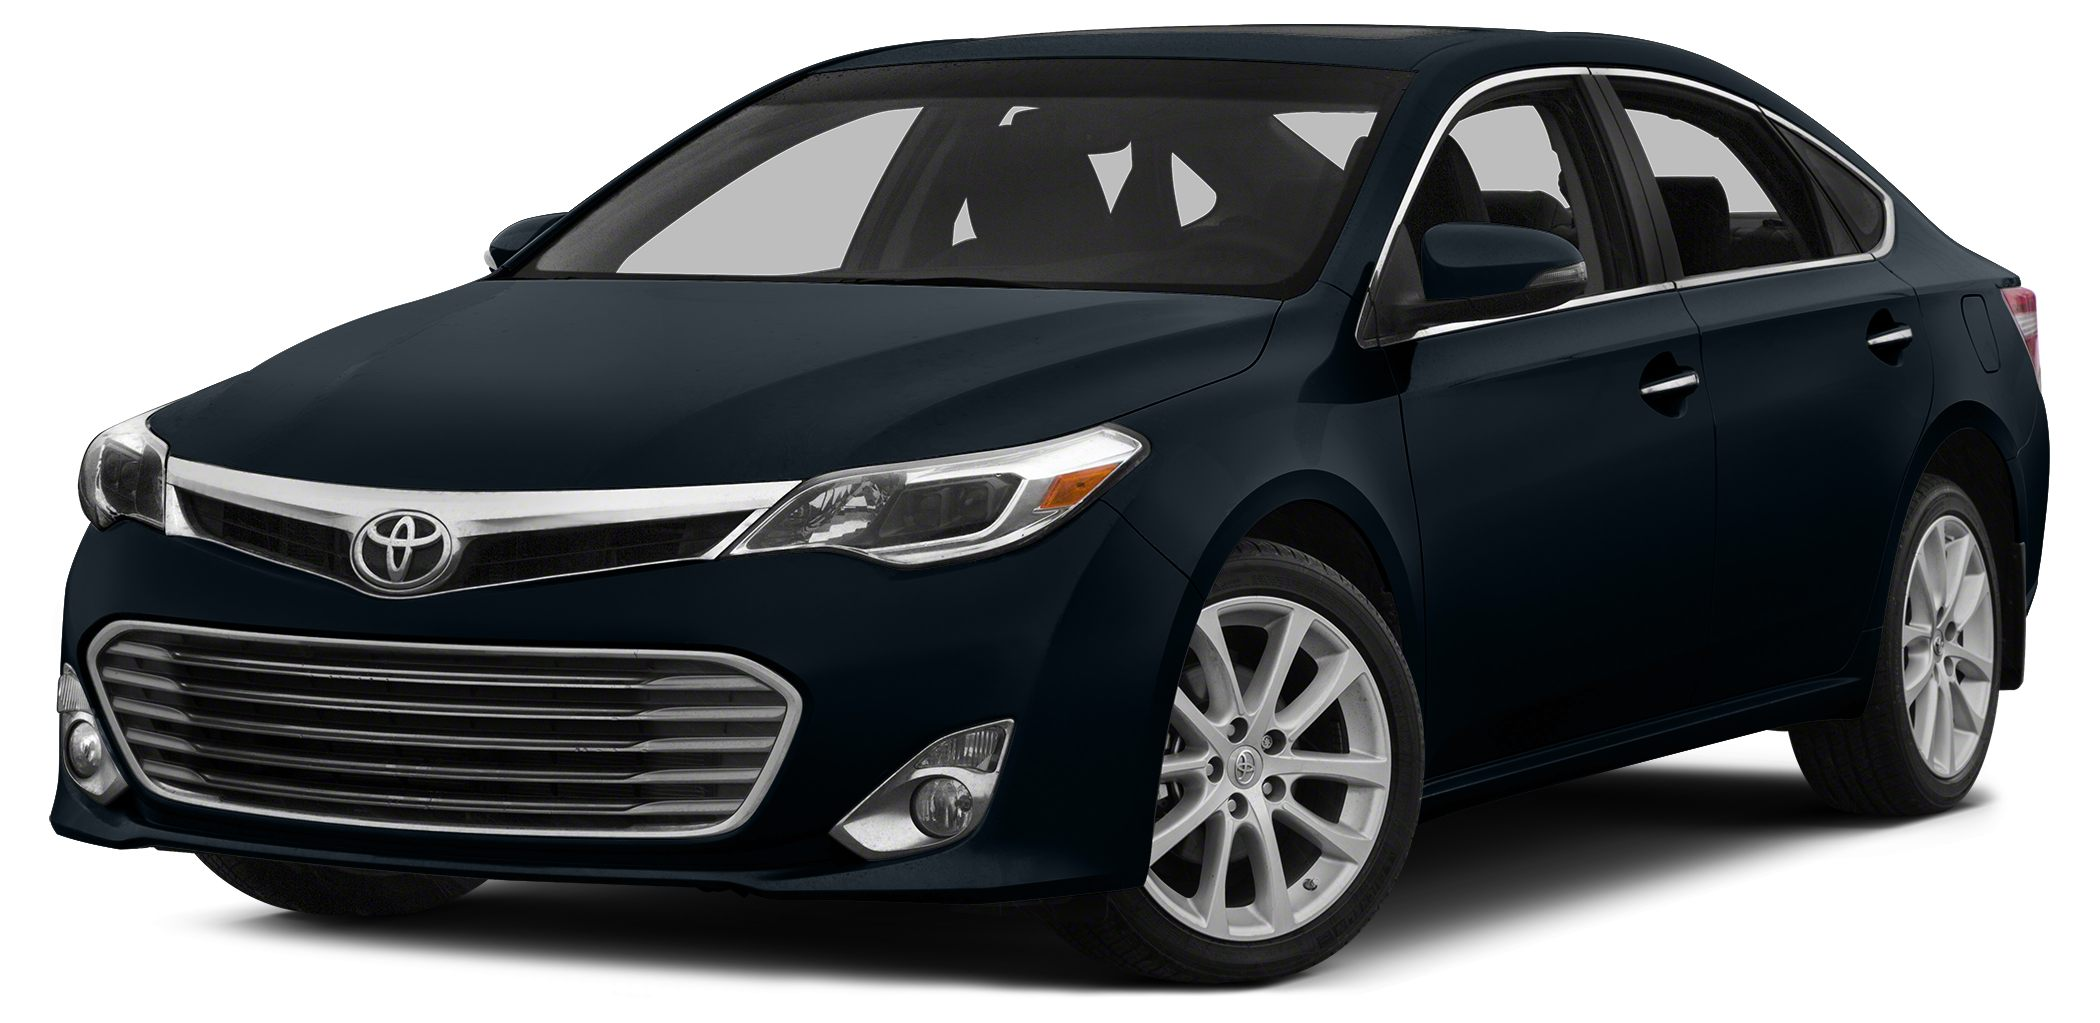 2014 Toyota Avalon XLE Premium CARFAX 1-Owner LOW MILES - 12721 EPA 31 MPG Hwy21 MPG City Nav